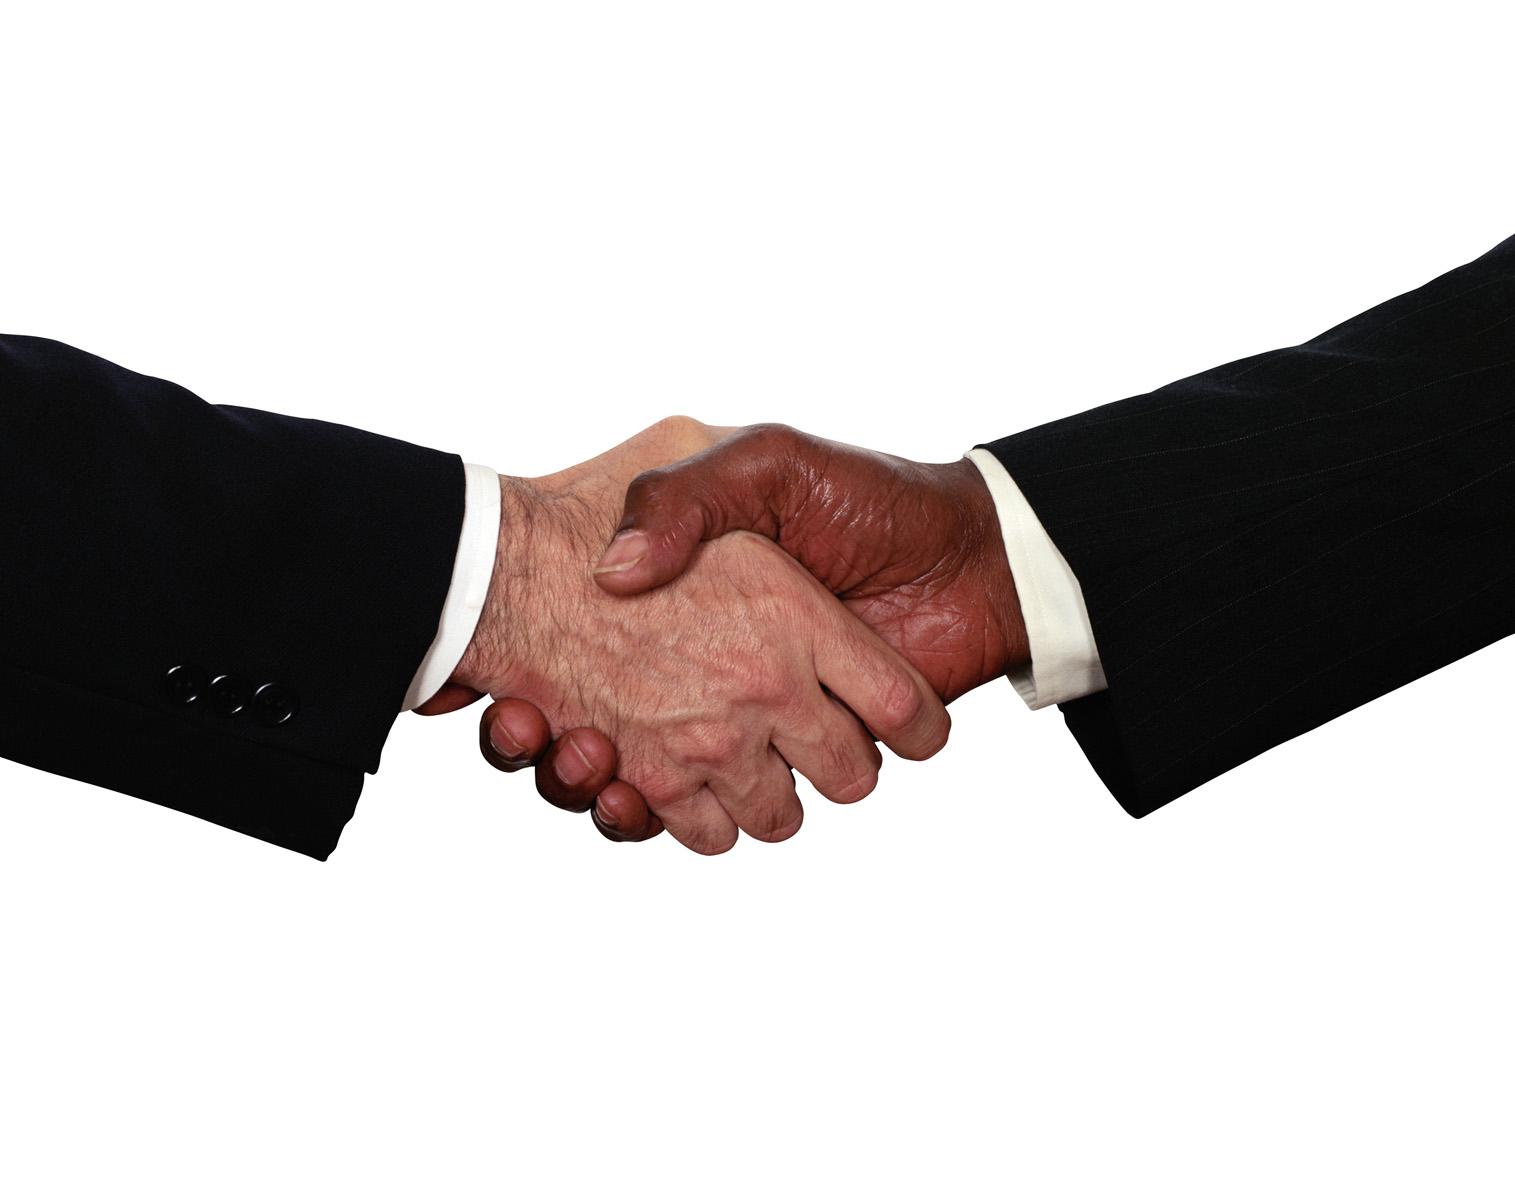 Finding the perfect business partner